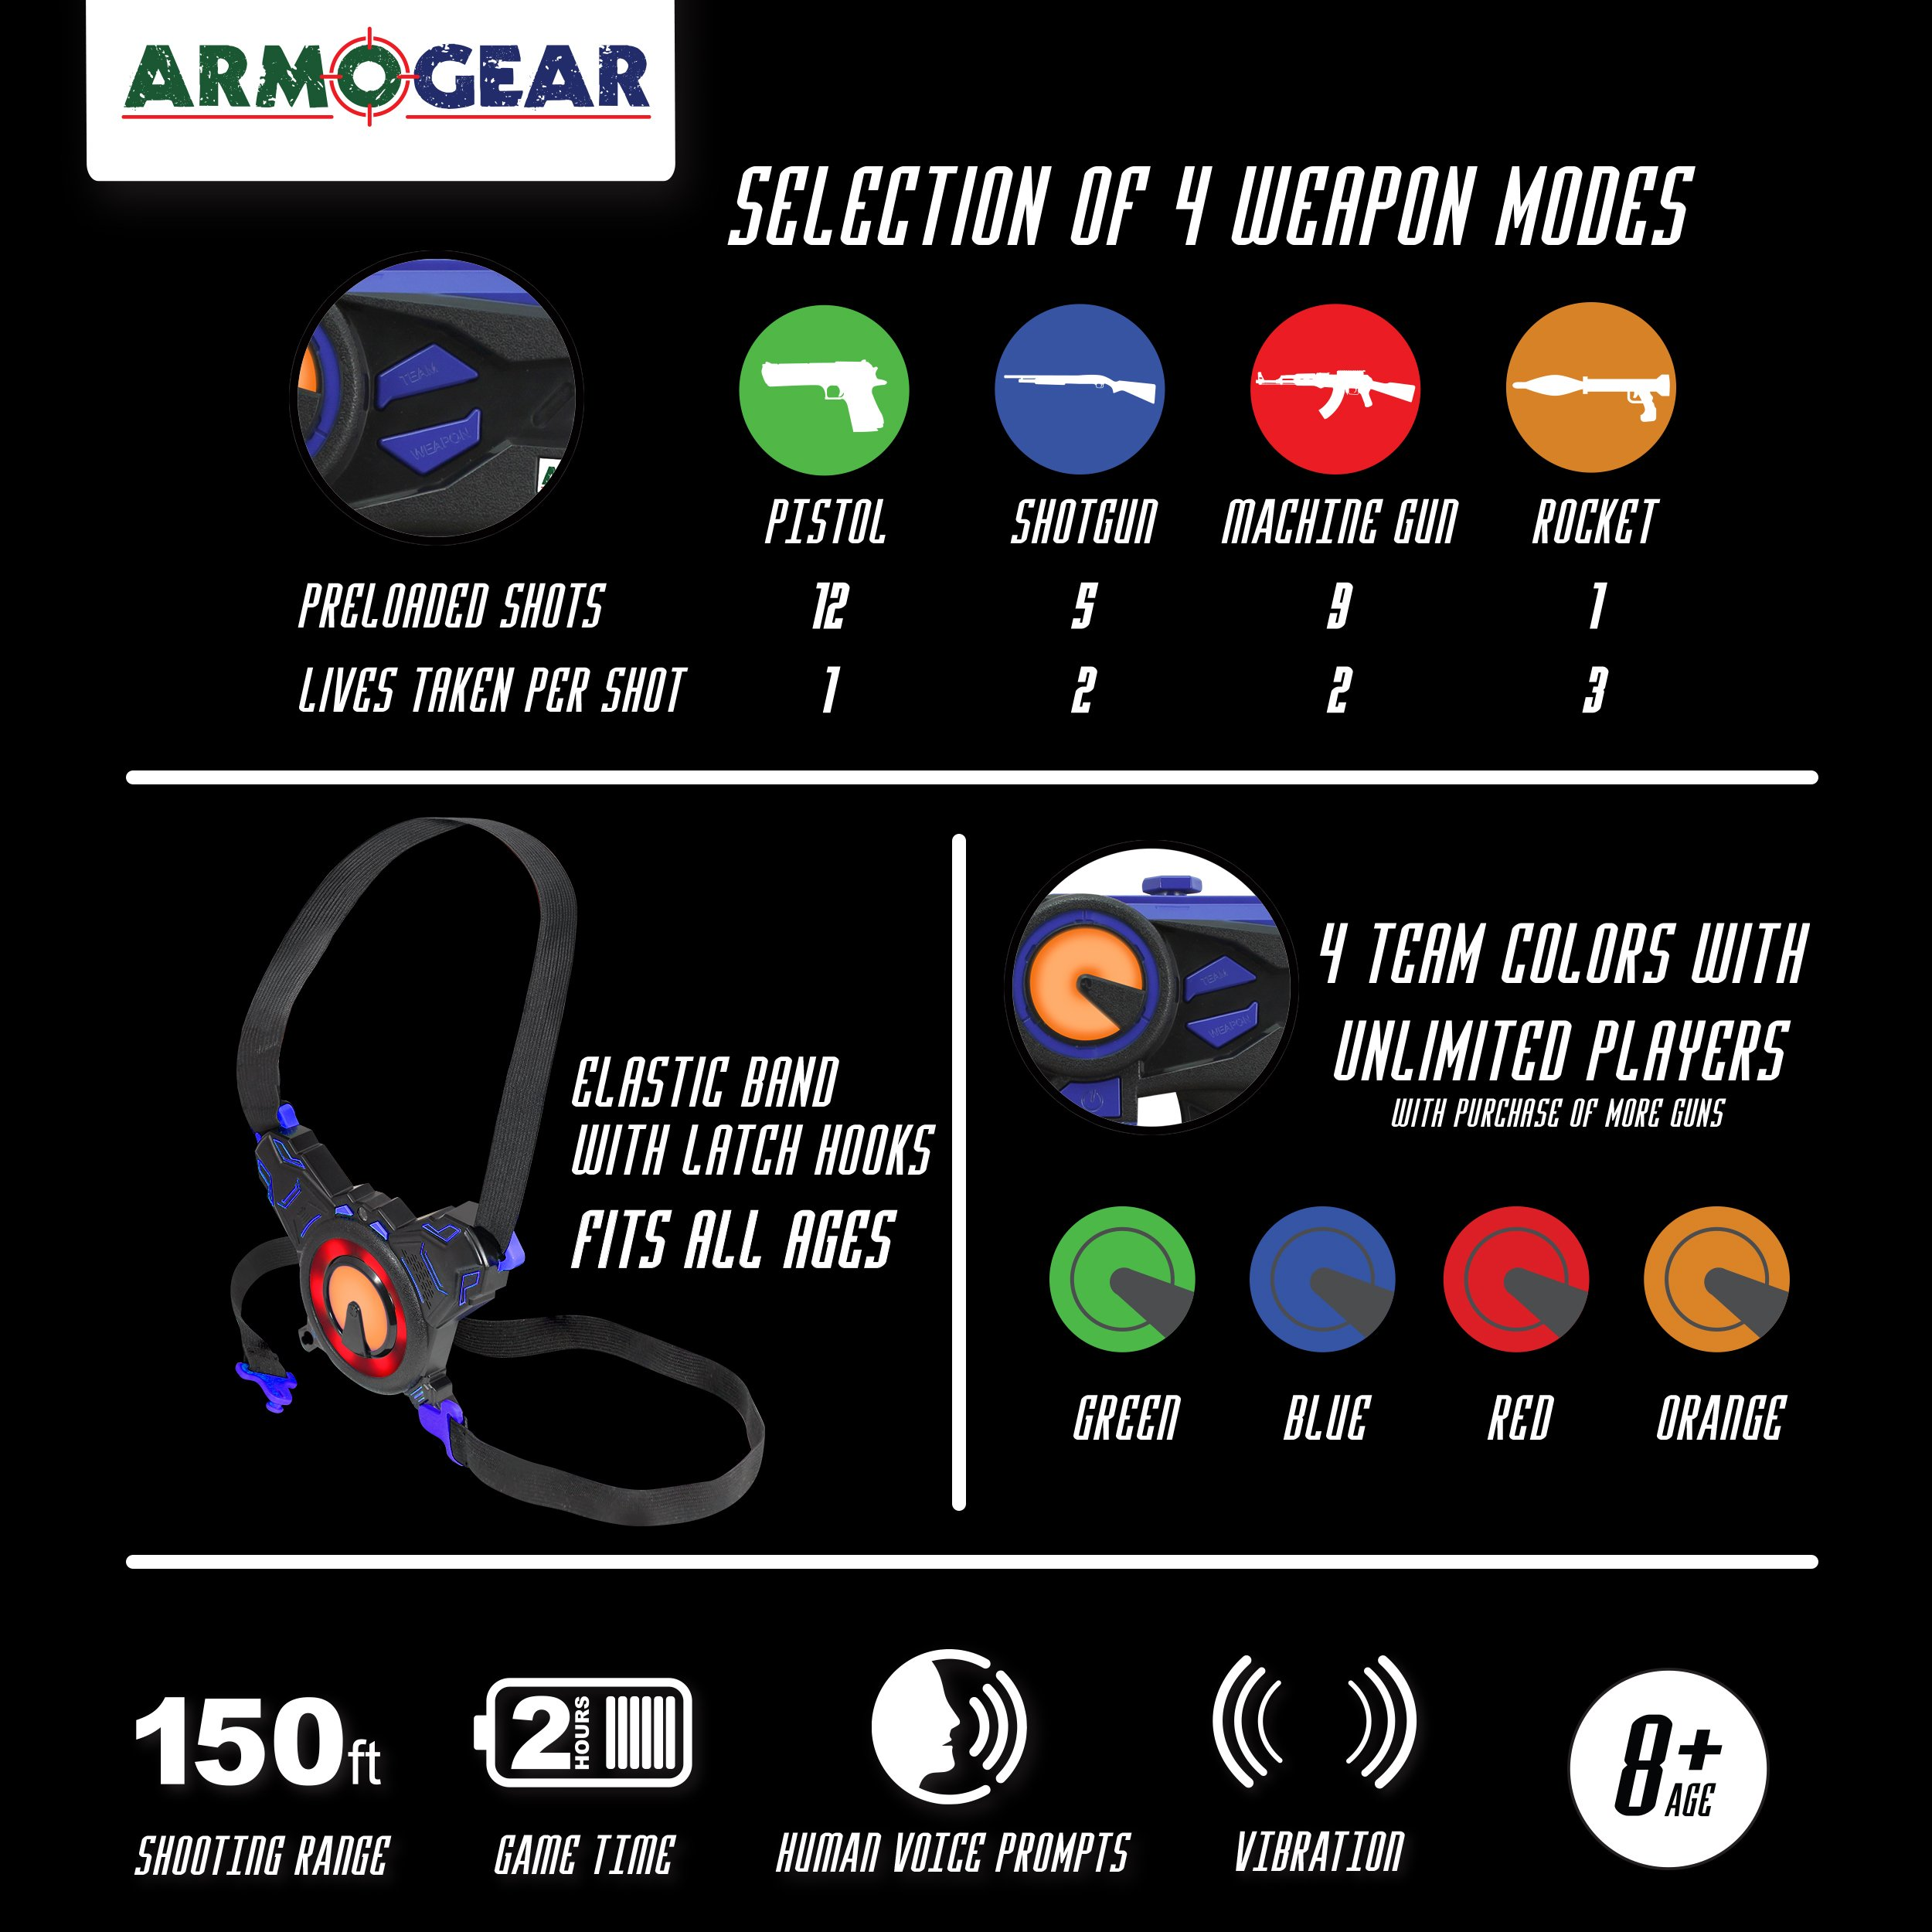 ArmoGear Infrared Laser Tag Guns and Vests - Laser Battle Game Pack Set of 2 - Infrared 0.9mW by ArmoGear (Image #4)